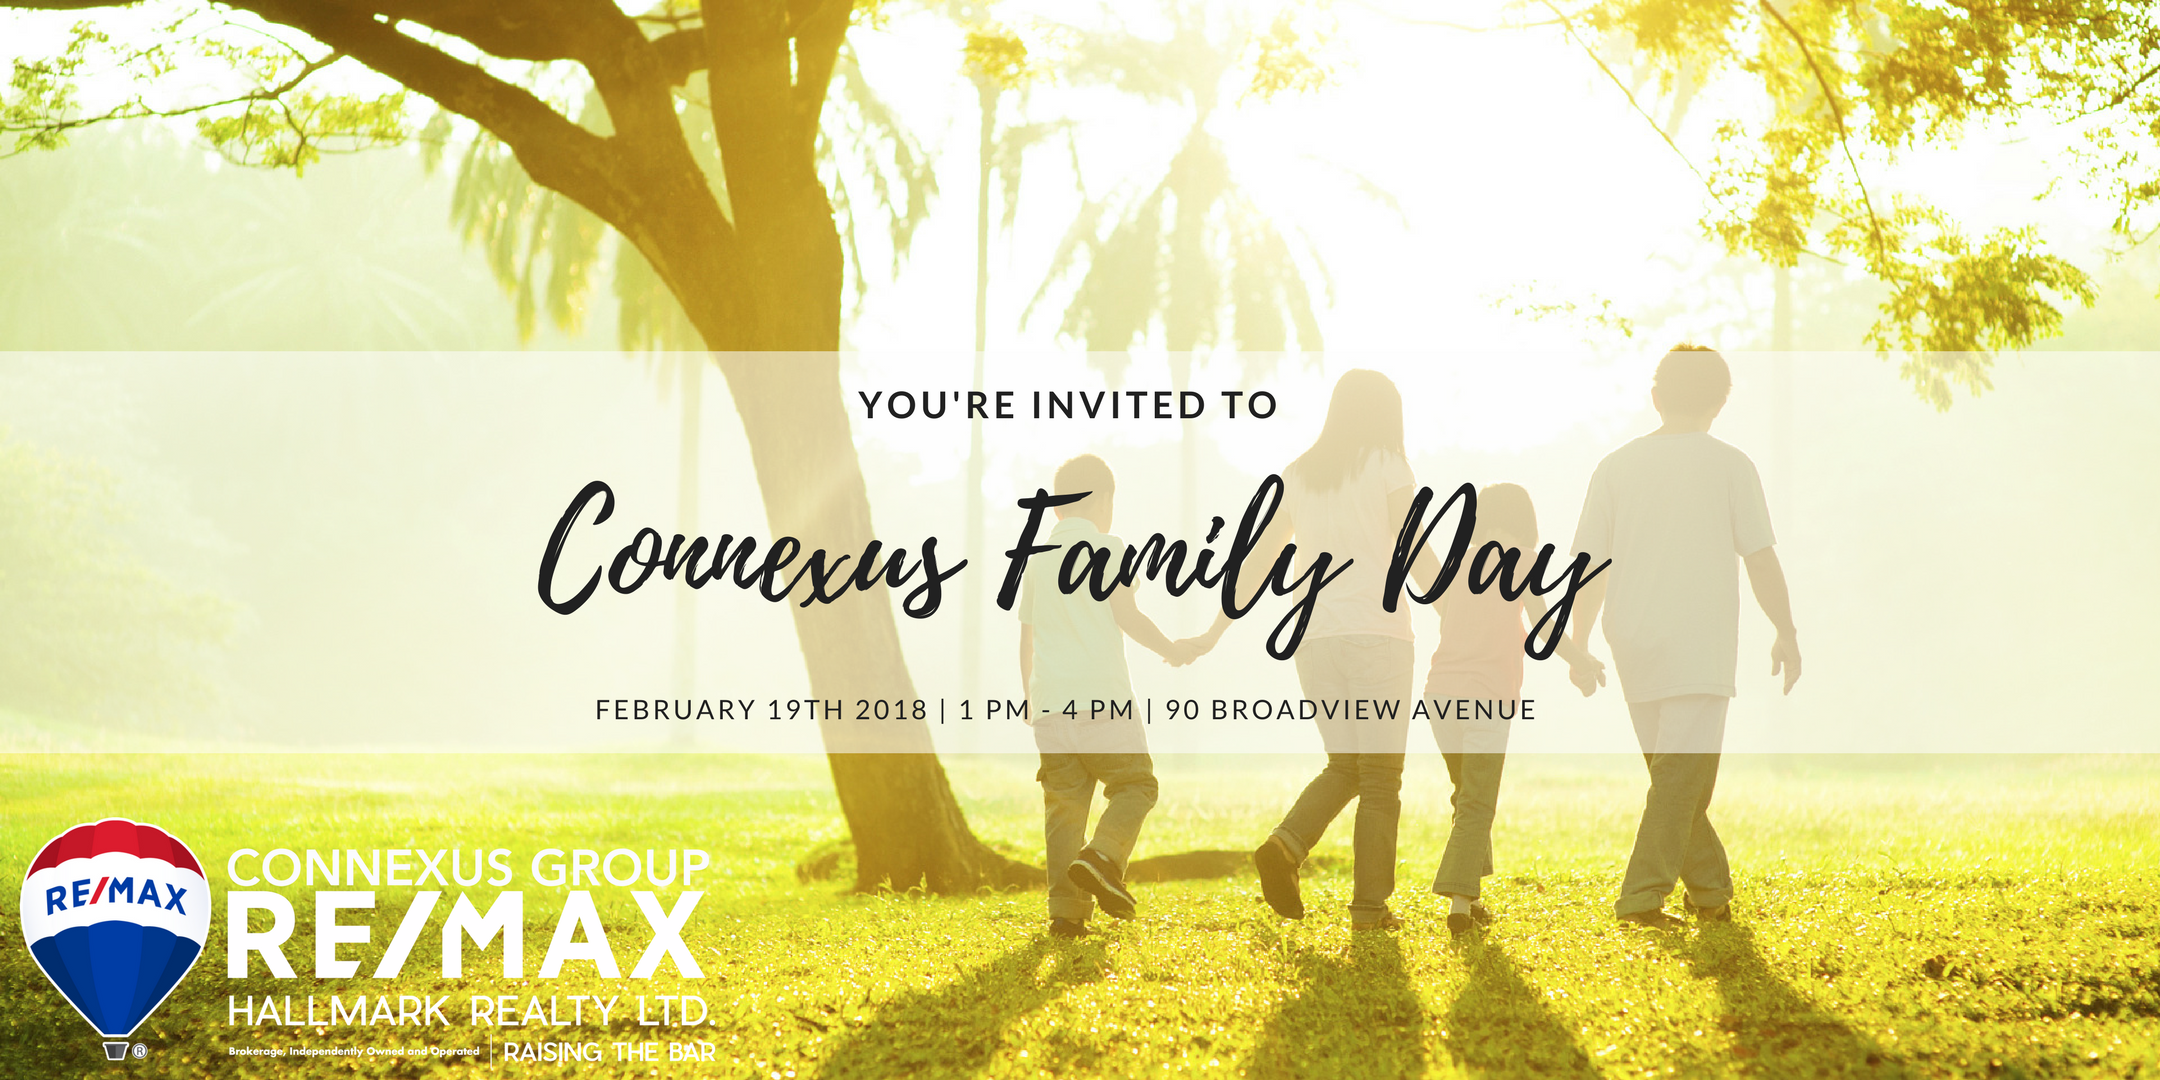 Connexus Family Day! Looking forward to seein